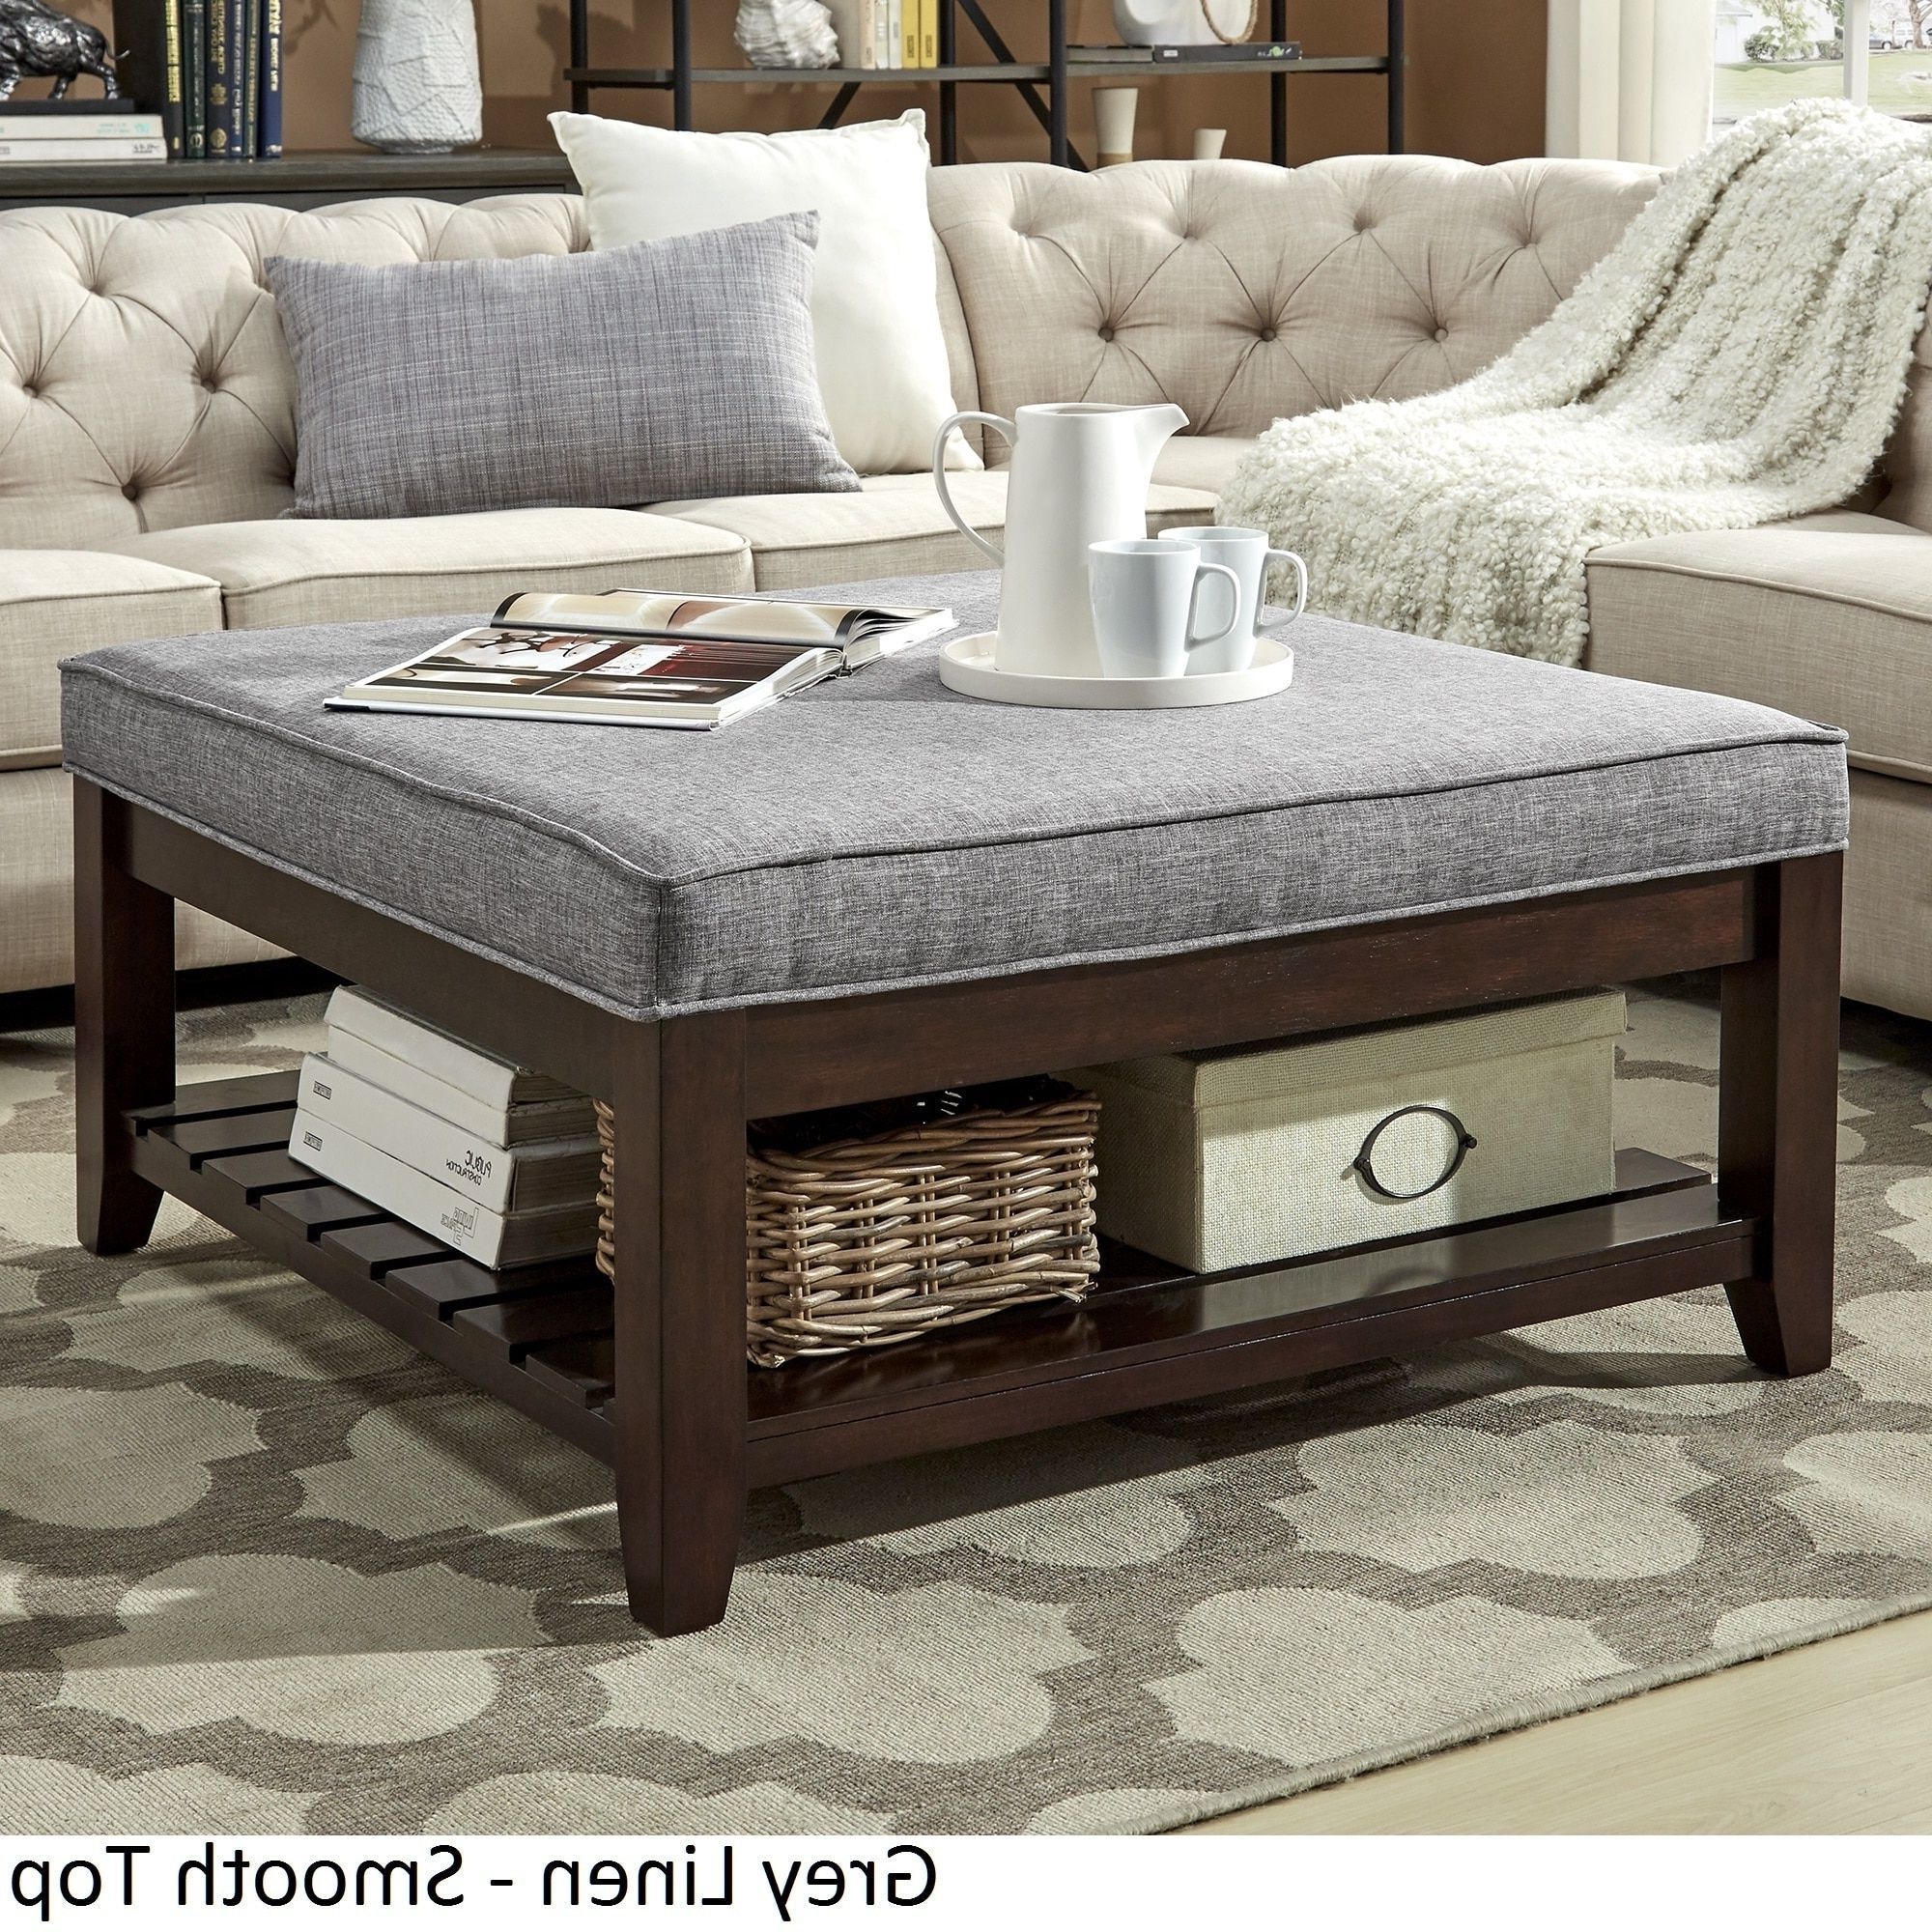 Lennon Espresso Planked Storage Ottoman Coffee Table For 2020 Lennon Pine Planked Storage Ottoman Coffee Tables (View 3 of 20)